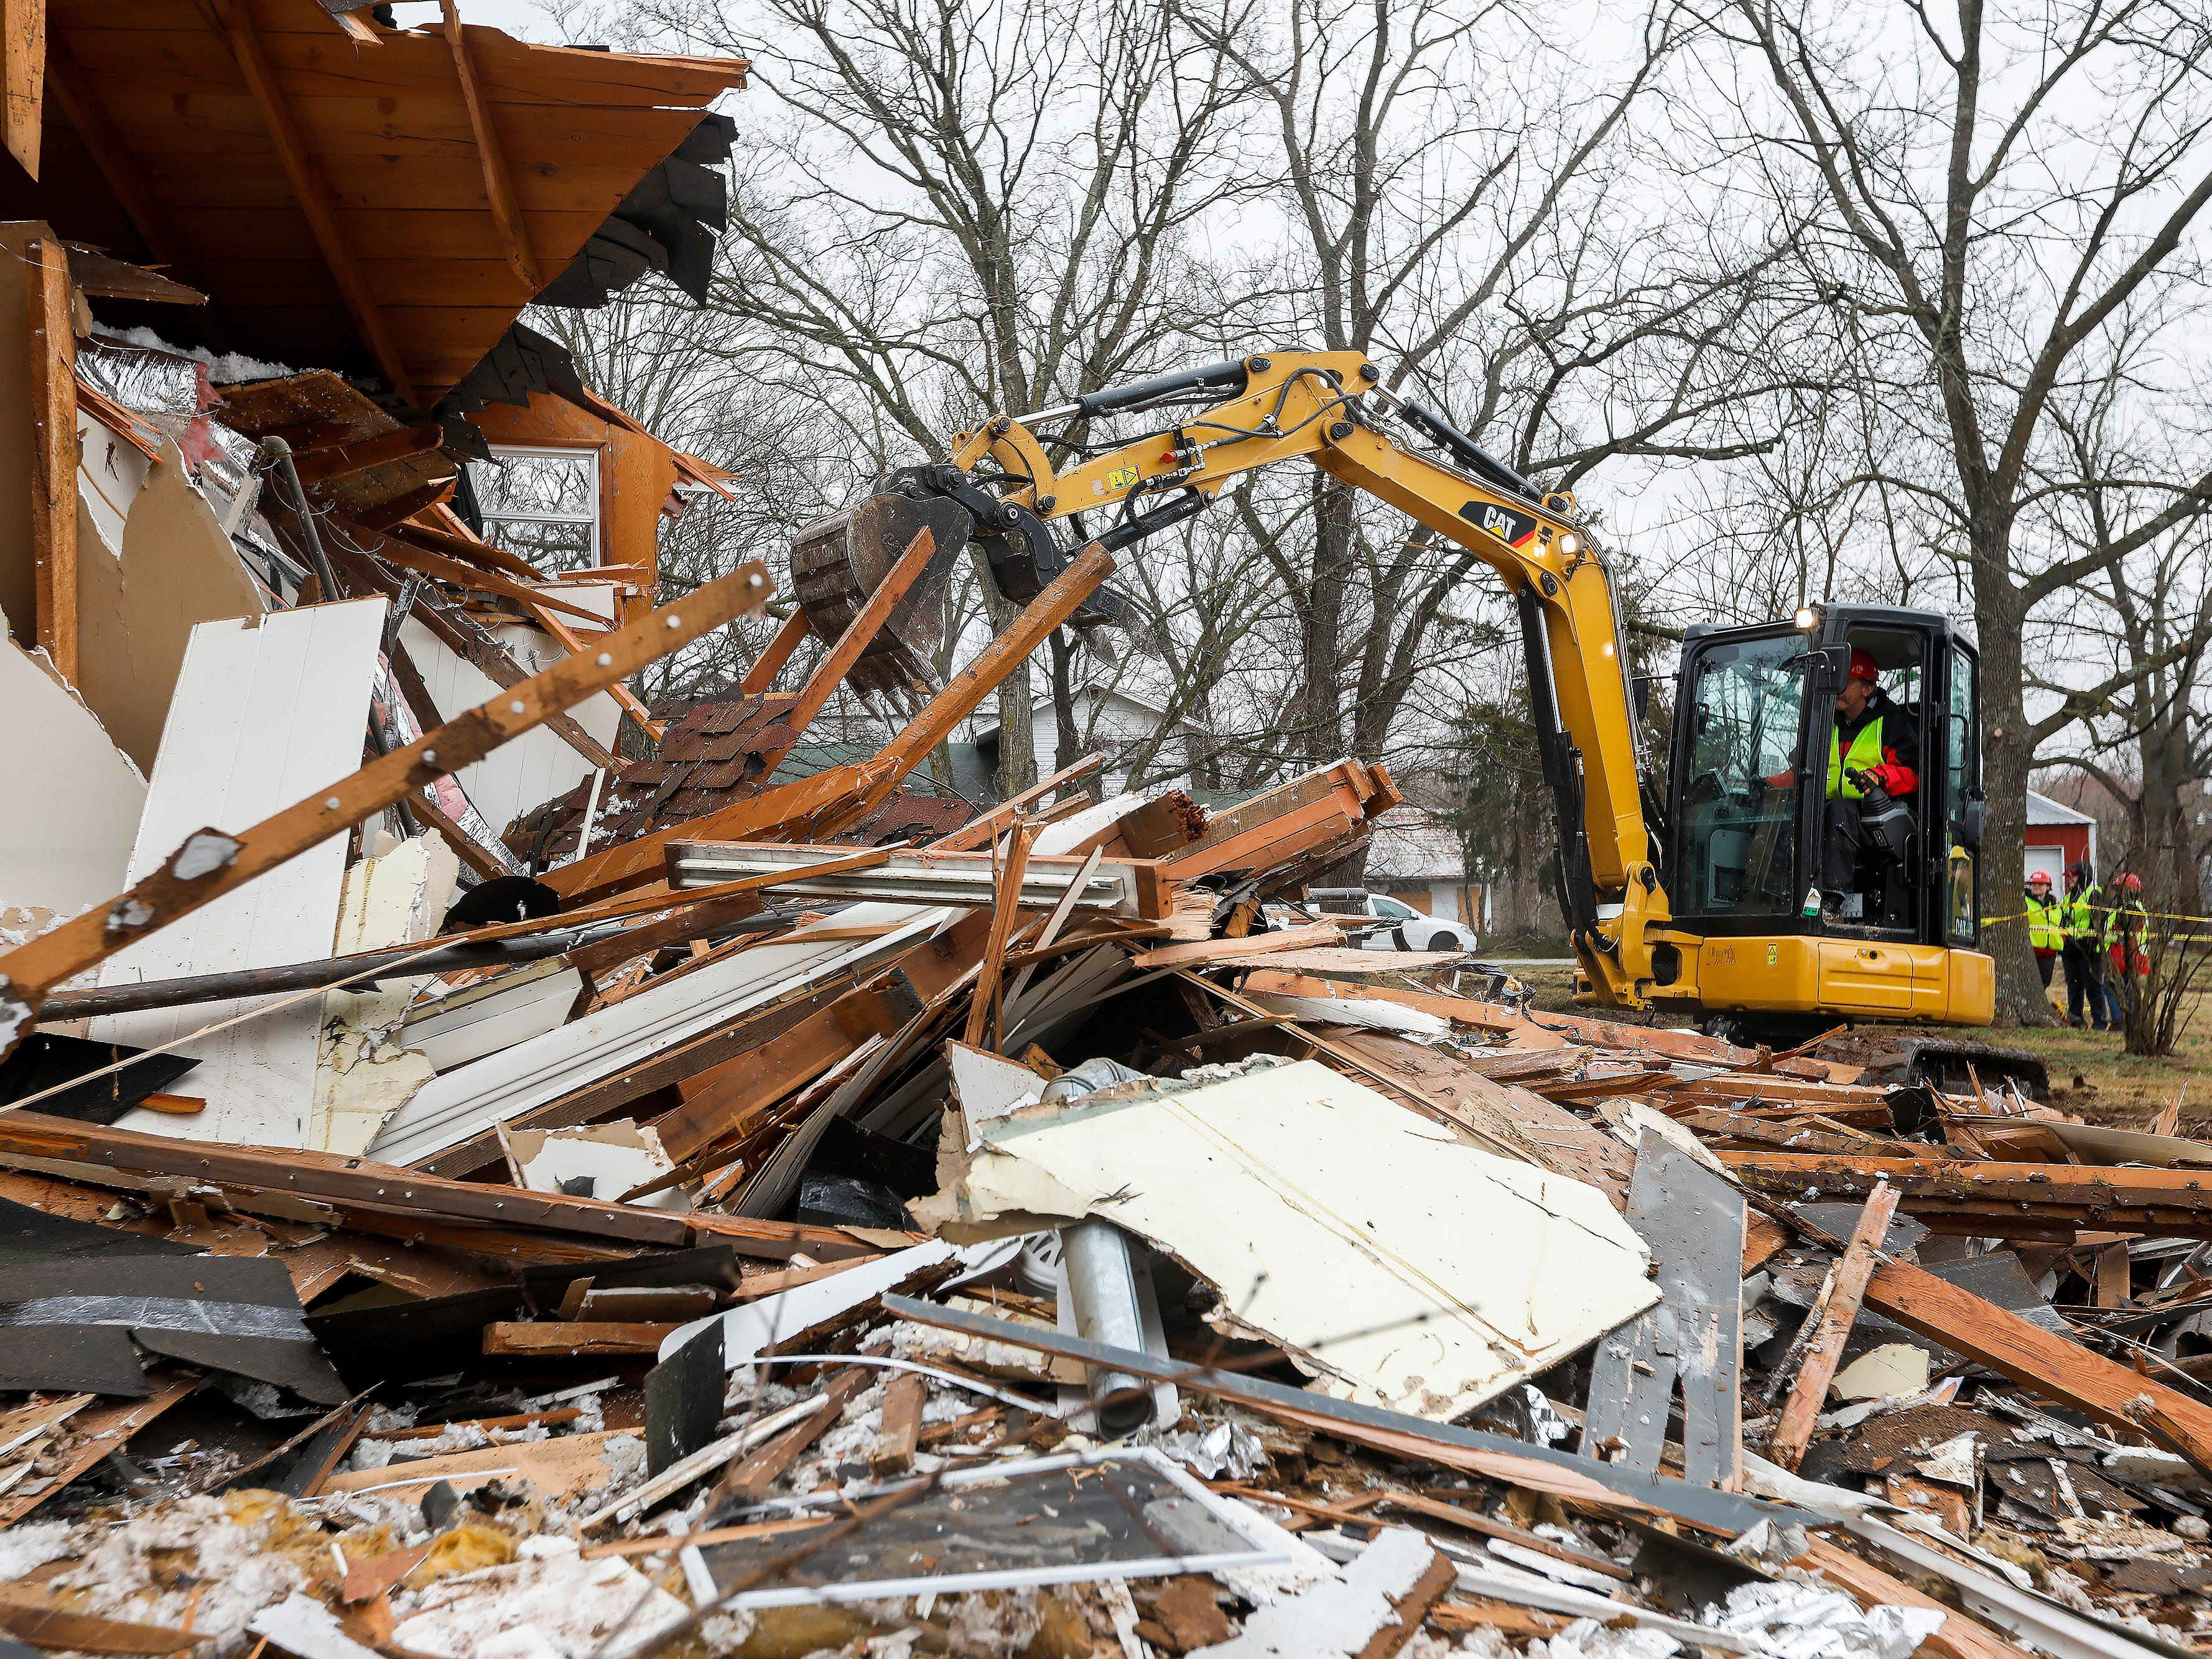 John Albert, of Convoy of Hope, uses a mini excavator to demolish a home at the Ozark Mill Finley Farms development on Tuesday, March 12, 2019. Members of the organization were gaining experience with demolition for when a real disaster strikes.